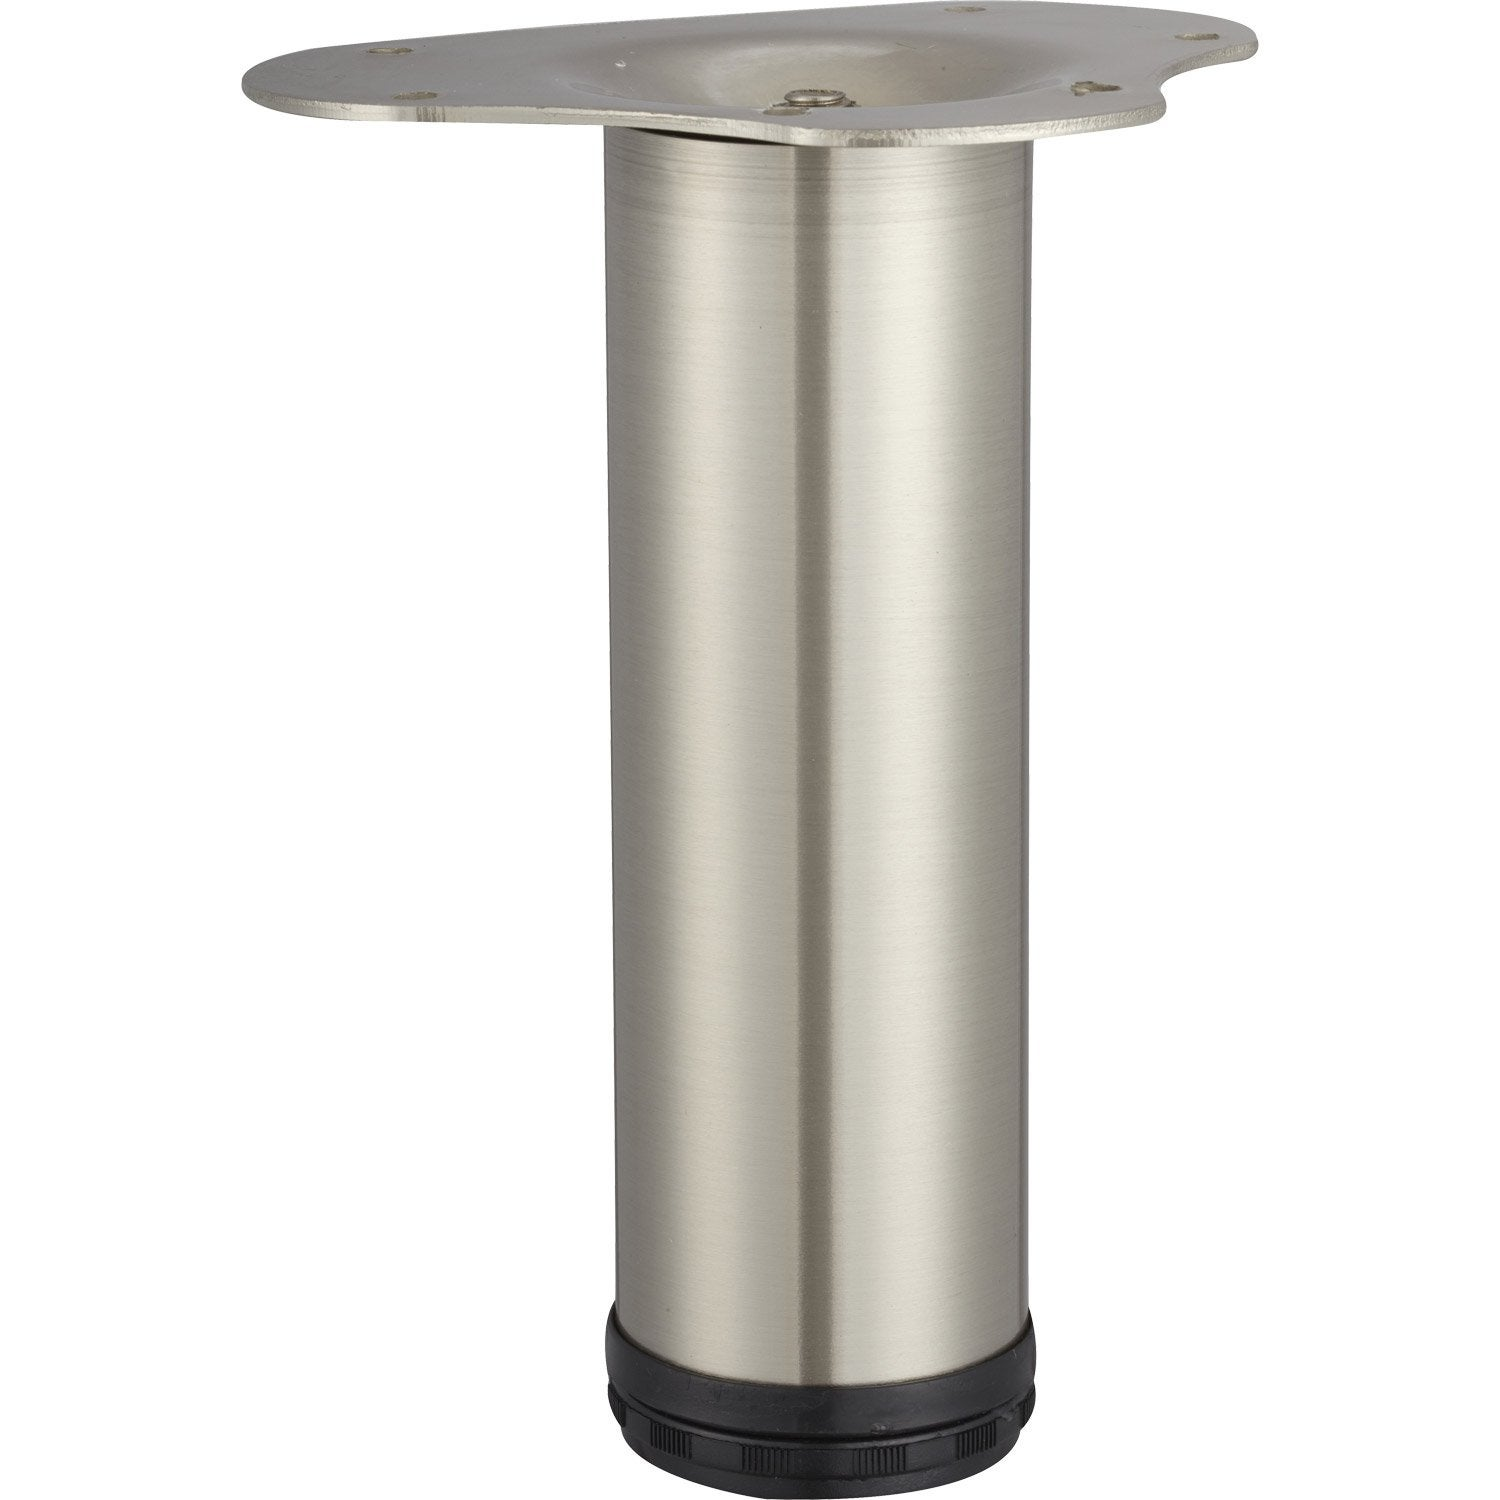 Pied de table basse cylindrique r glable en acier bross gris 20cmx60mm le - Pied de table basse leroy merlin ...